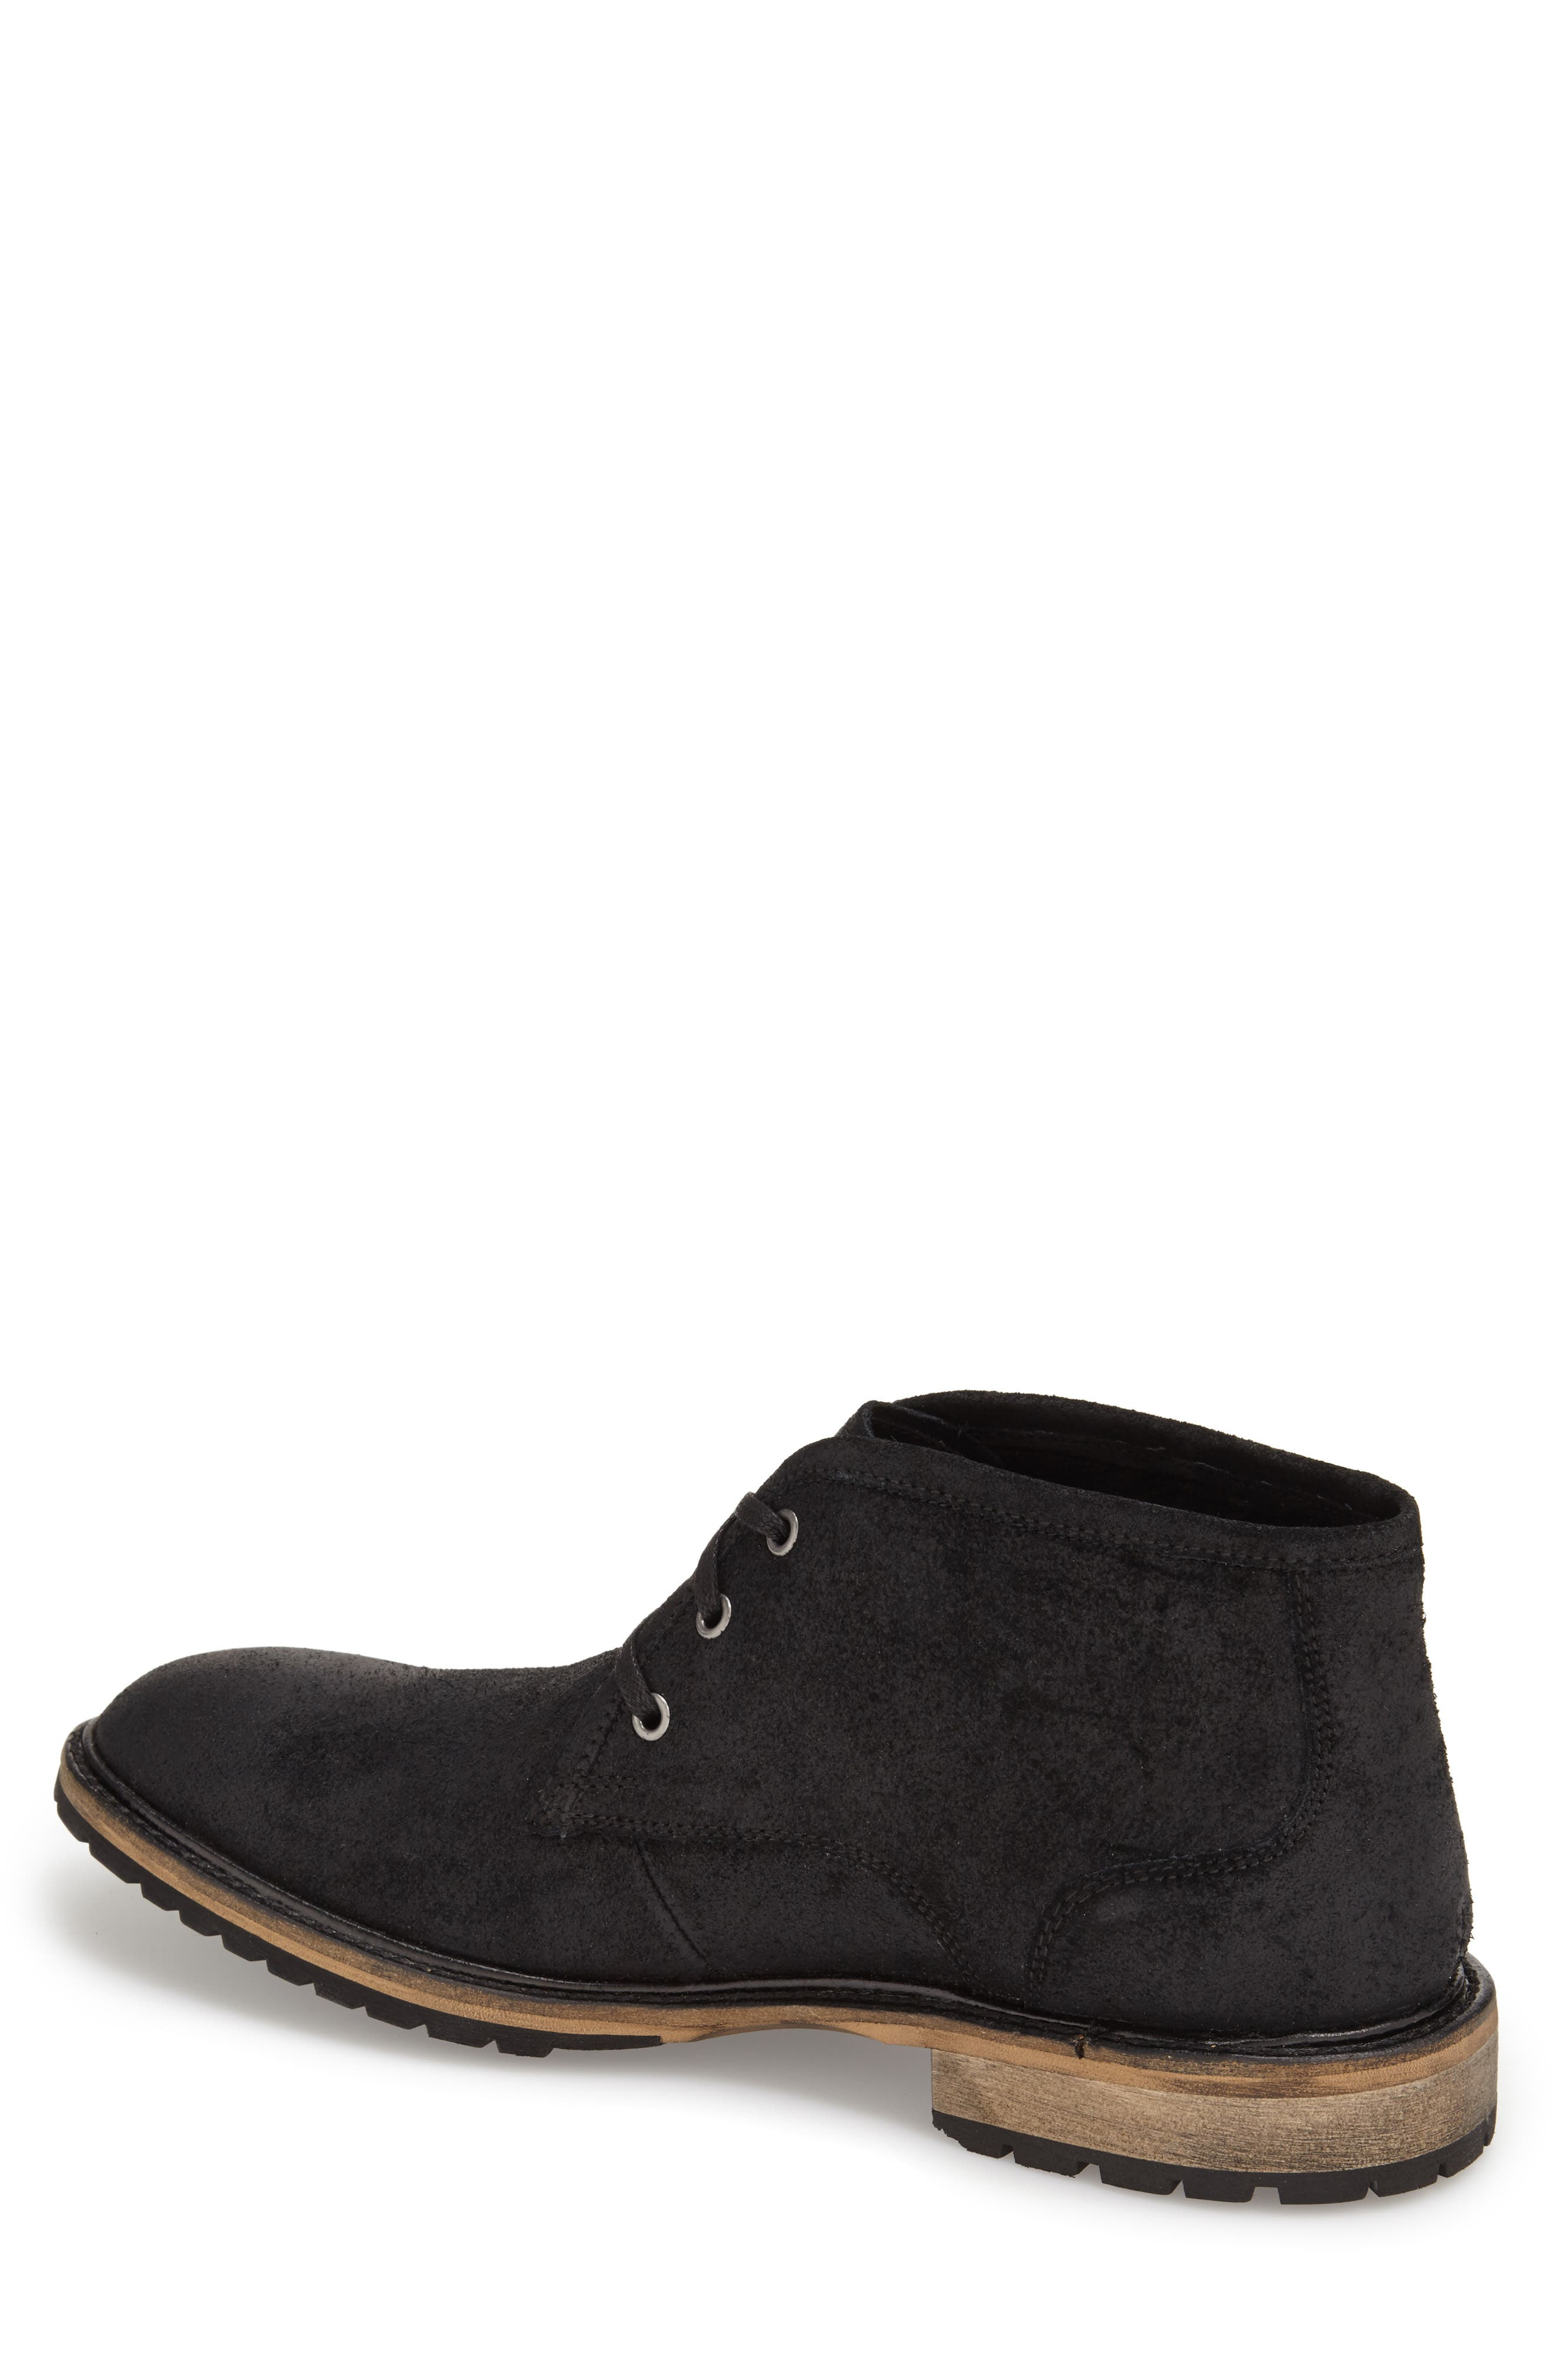 Woodside Chukka Boot,                             Alternate thumbnail 2, color,                             Black/ Deep Natural Suede